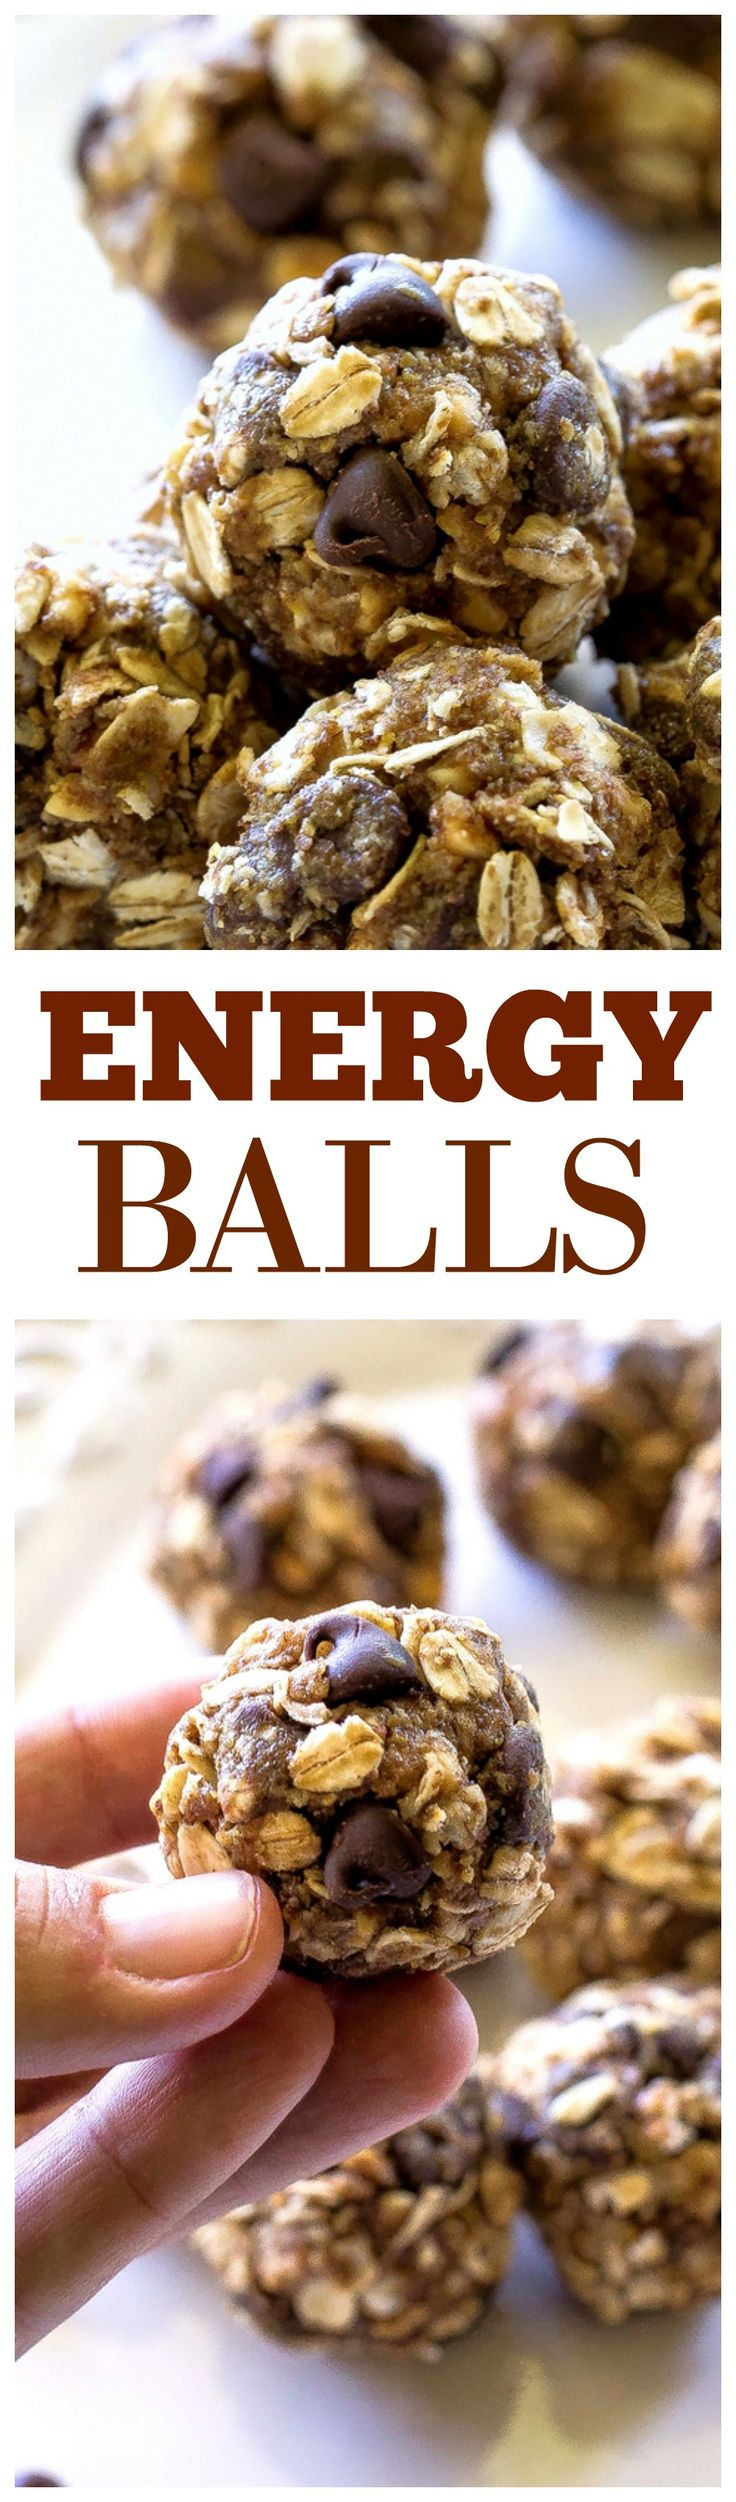 Energy Balls Filled With Oats, Honey, Flaxseed, and Peanut Butter